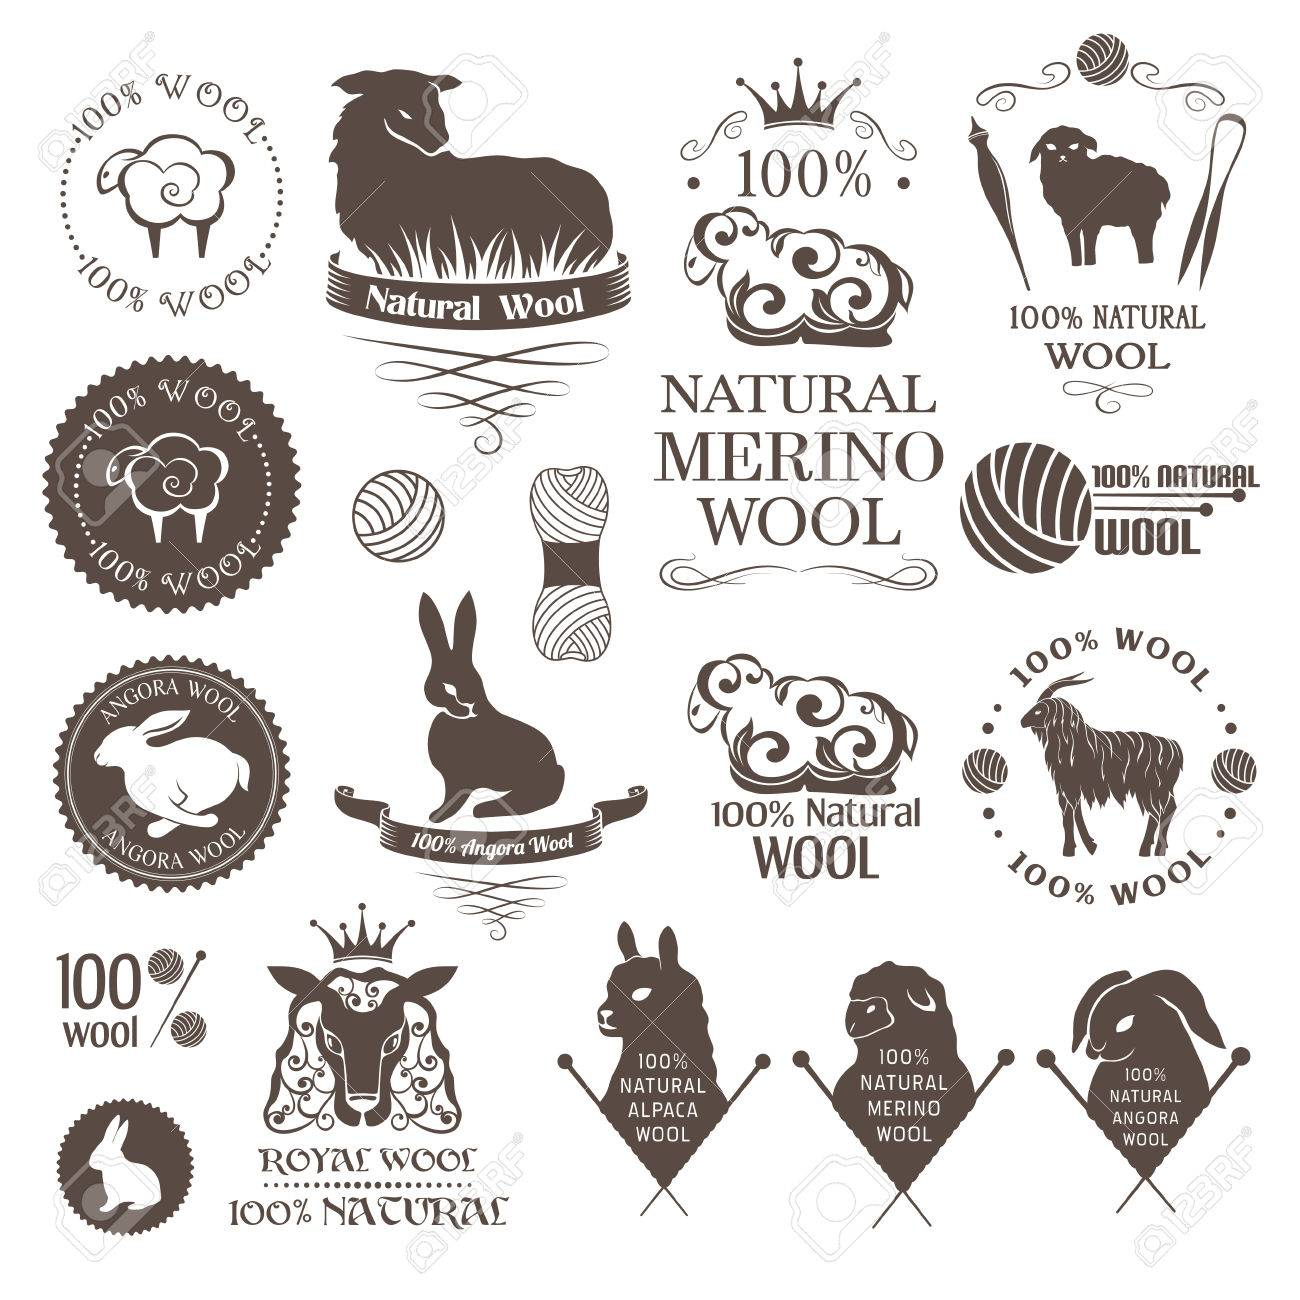 Wool design elements. Labels set of sheep, alpaca, rabbit and goat wool. Logos and emblems for natural wool products. - 57484557